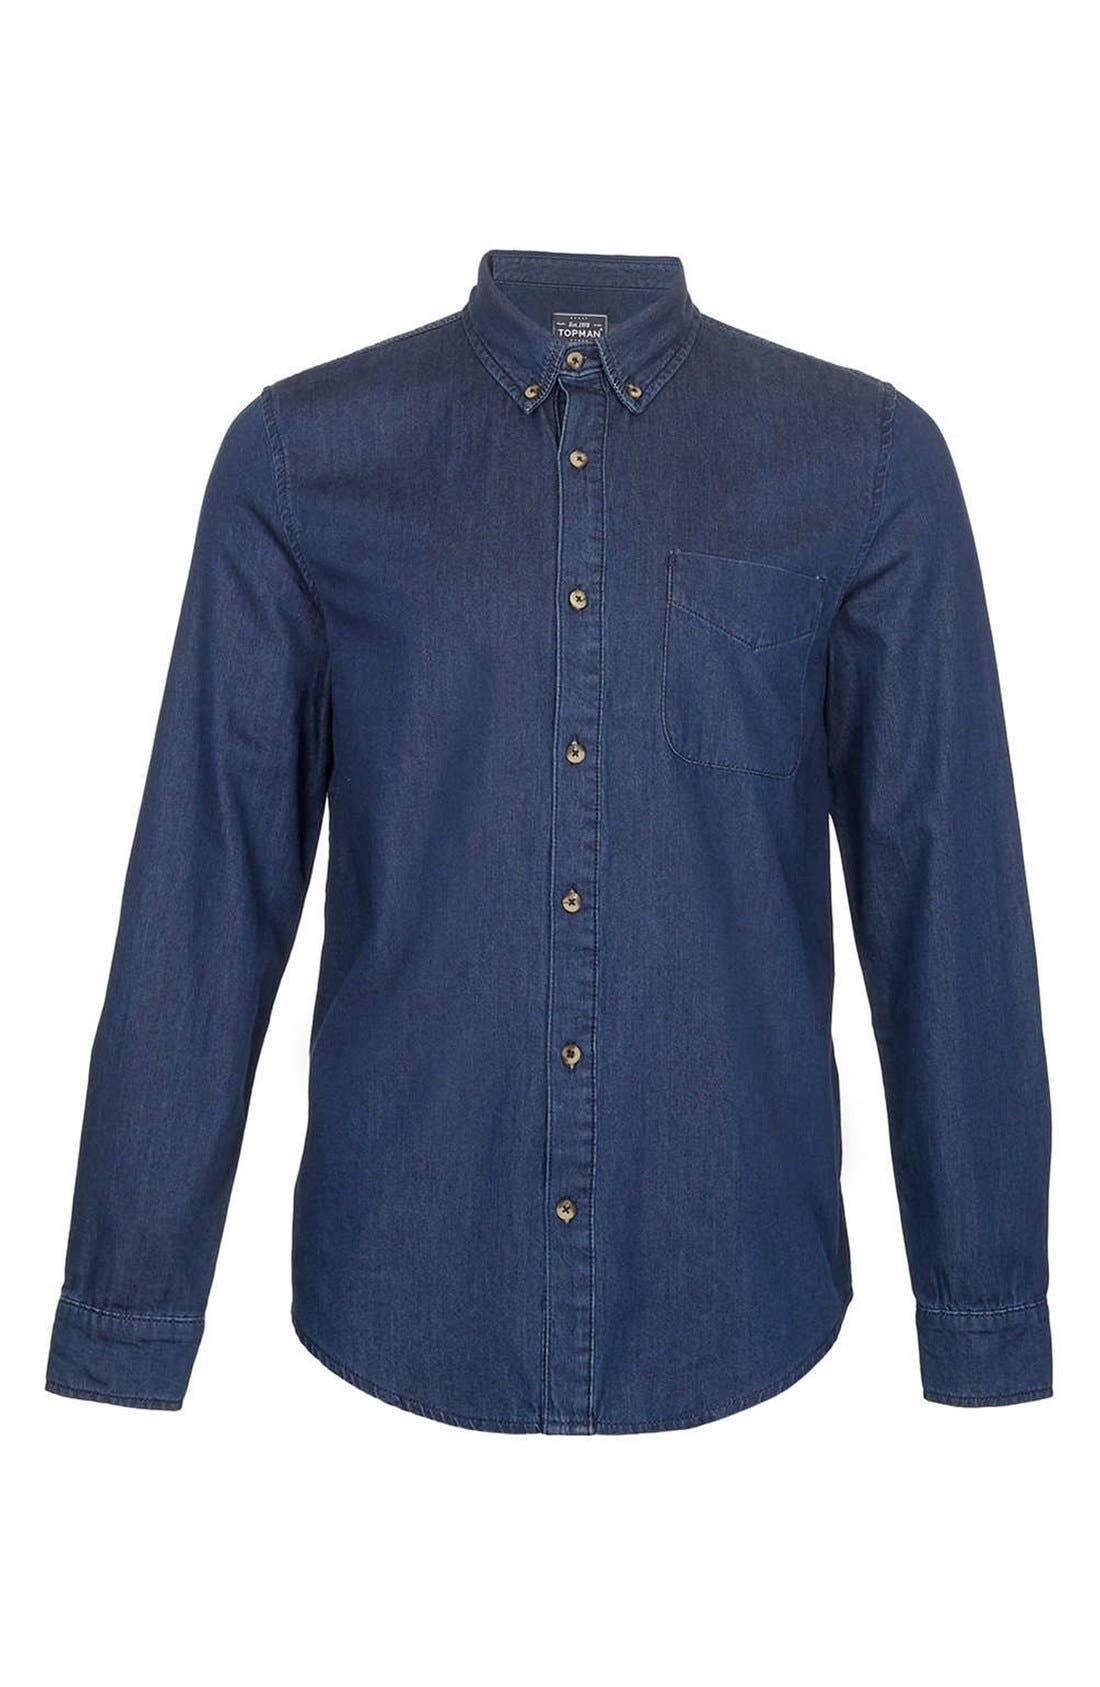 Alternate Image 1 Selected - Topman Denim Shirt